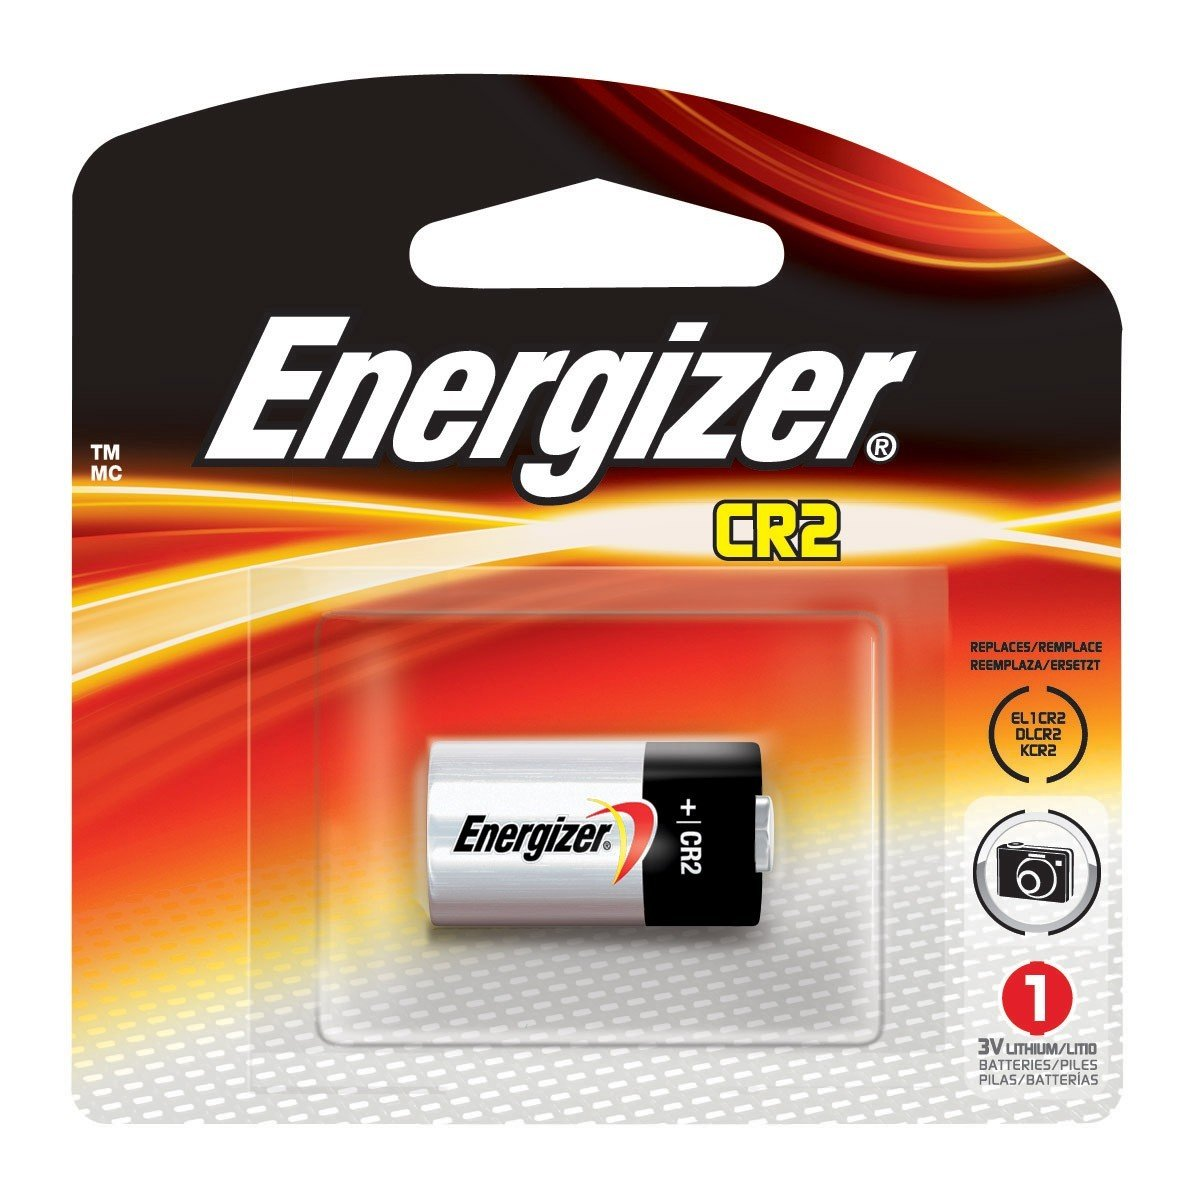 Energizer EL1CR2 Photo Lithium Battery Replacement